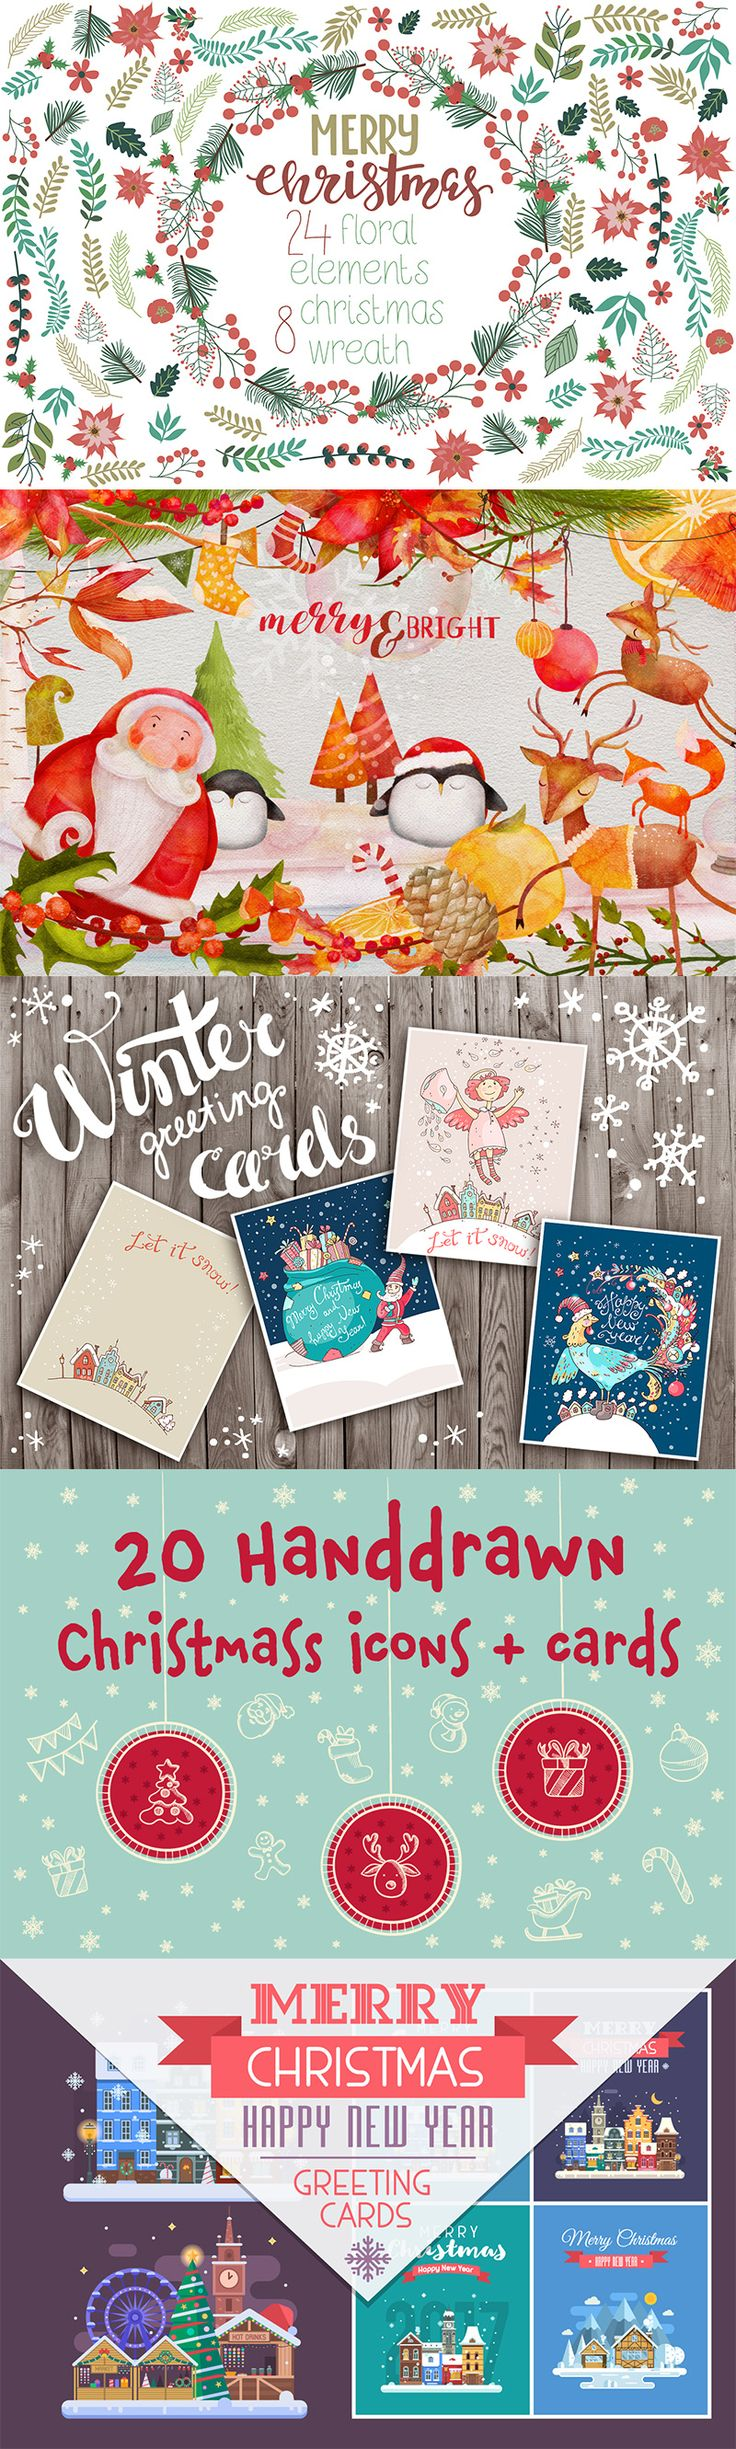 124 Best Happy Holidays Seasons Greetings Images On Pinterest